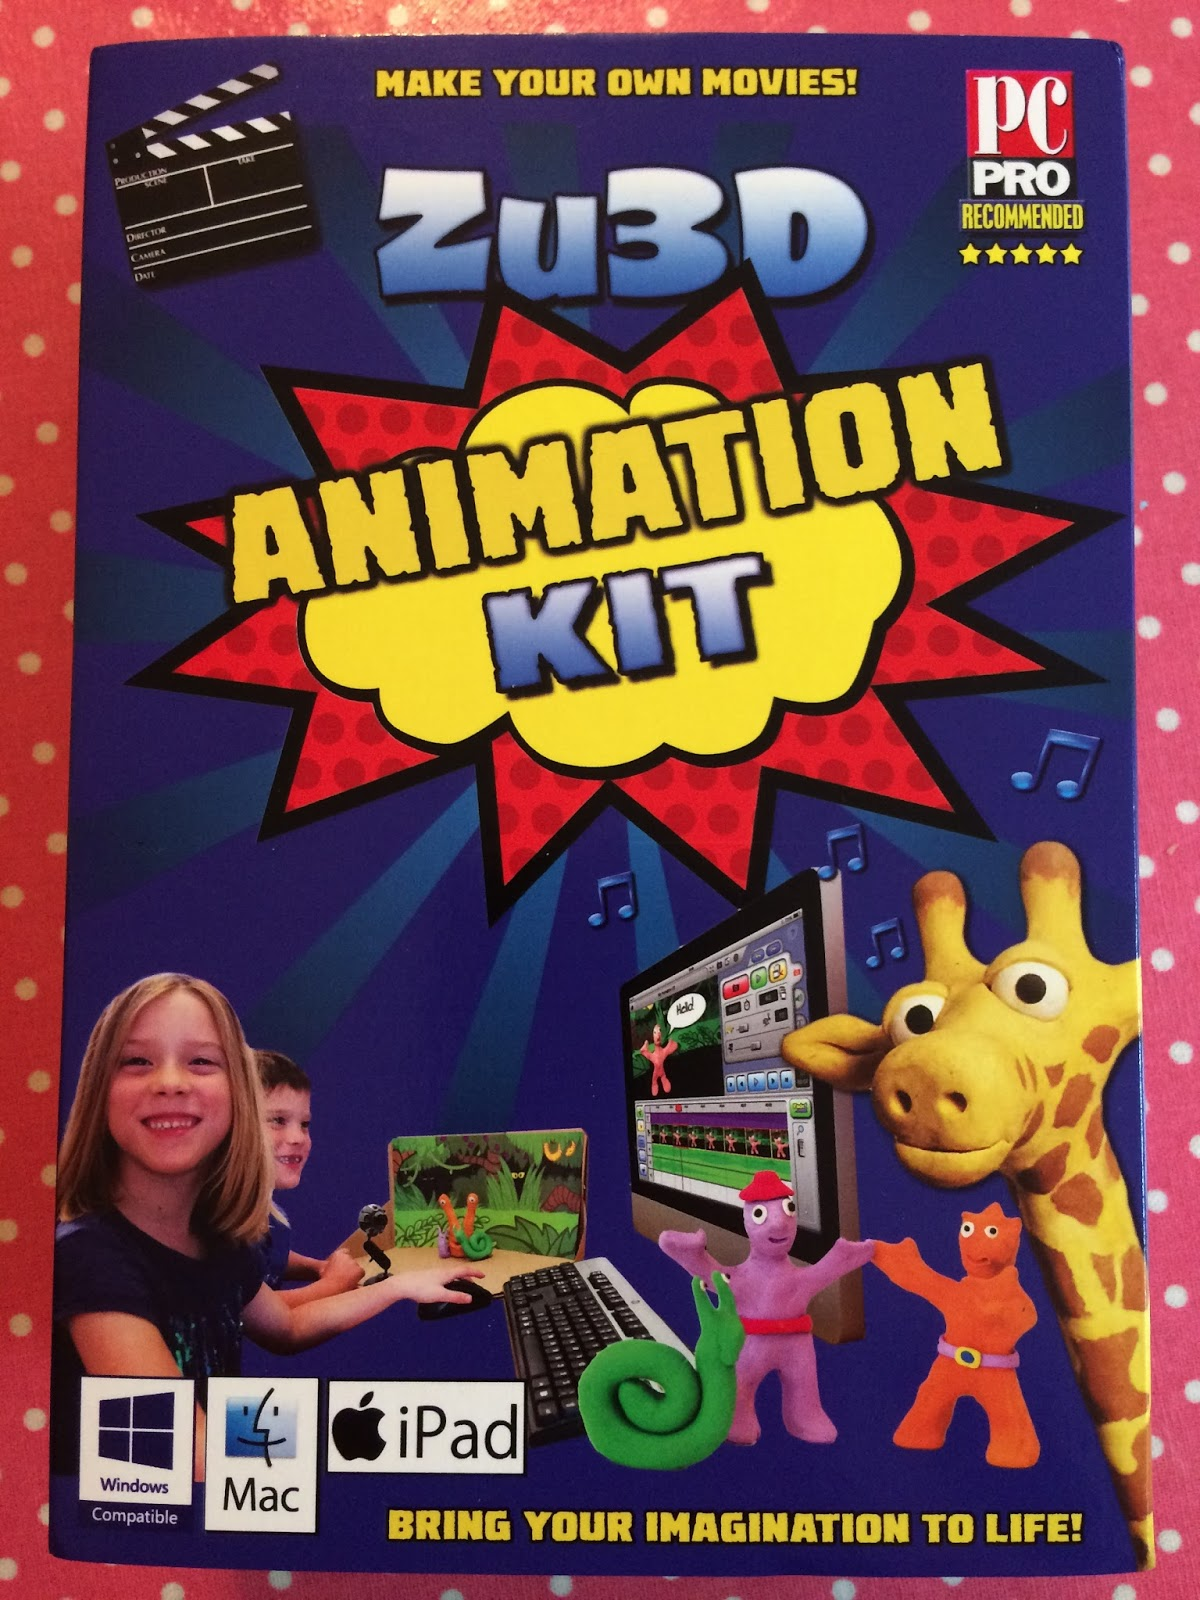 zu 3d animation kit review truly madly cuckoo